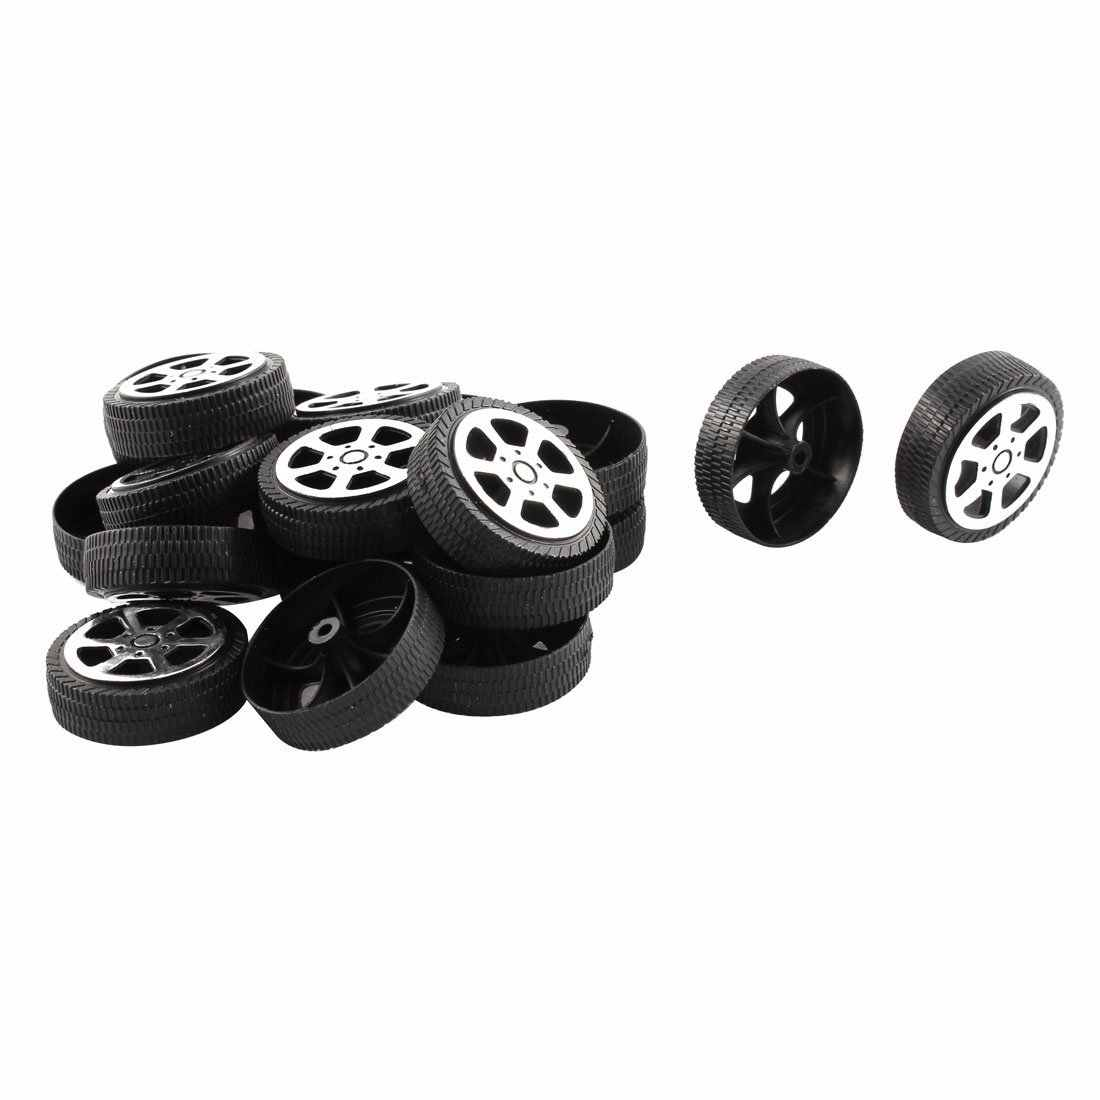 Plastic Roll 2mm Dia Shaft Auto Vrachtwagen Model Speelgoed Wiel 30mm x 9mm 20Pcs